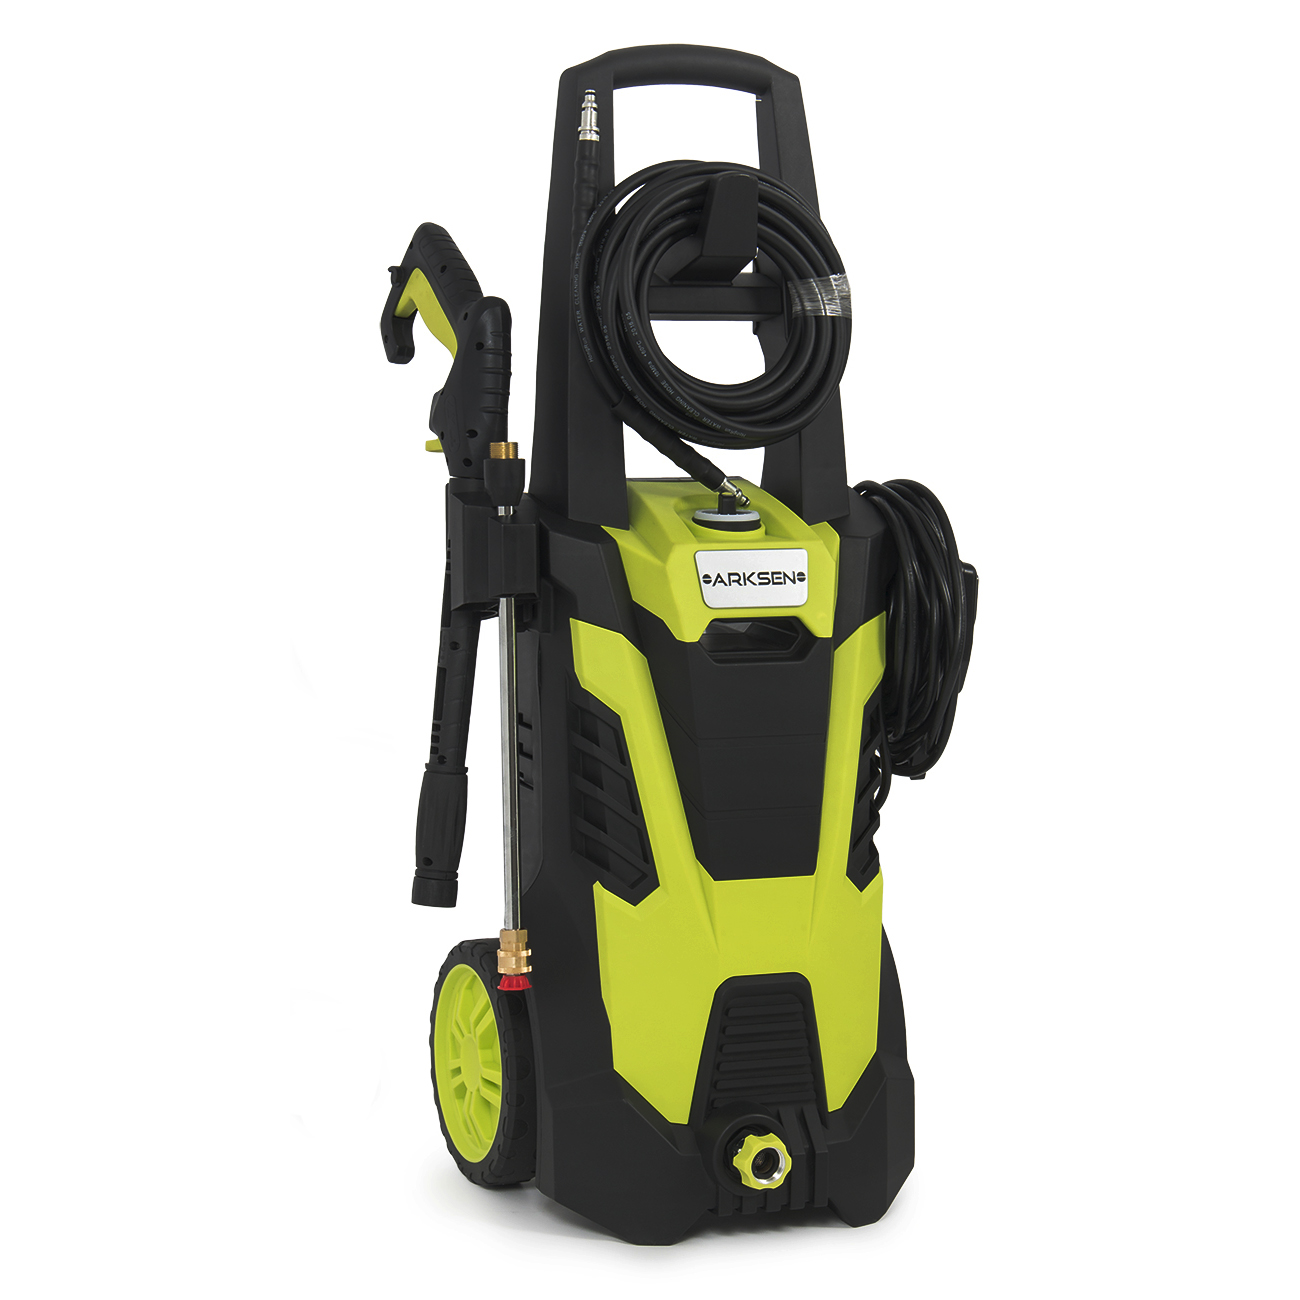 Arksen Burst 3000PSI Electric Pressure Washer Machine with (5) Nozzle Adapter kit